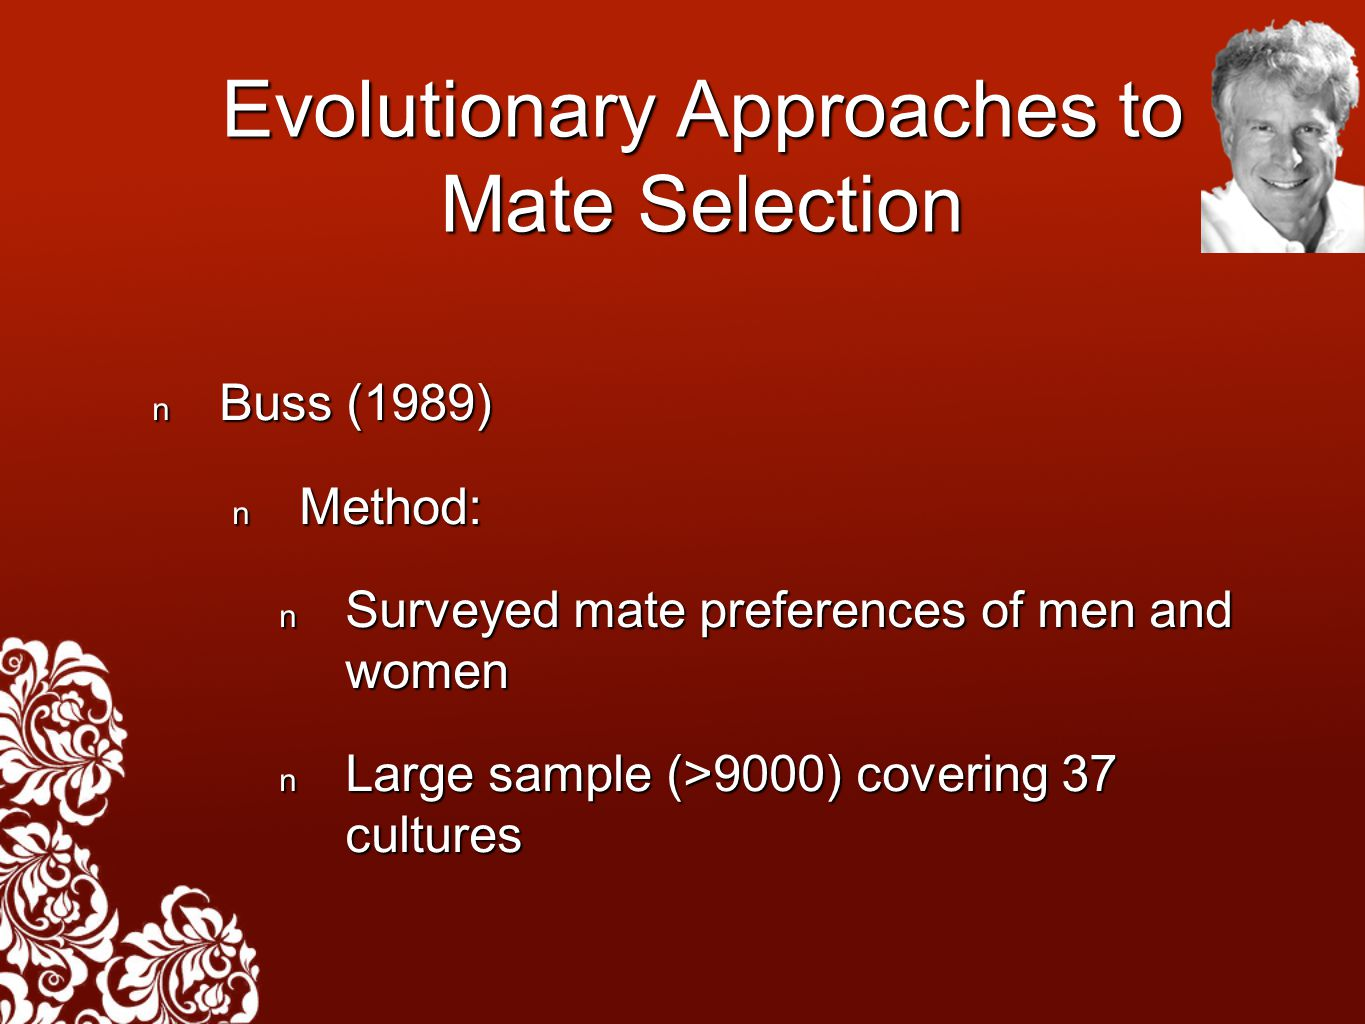 Evolutionary Approaches to Mate Selection Buss (1989) Buss (1989) Method: Method: Surveyed mate preferences of men and women Surveyed mate preferences of men and women Large sample (>9000) covering 37 cultures Large sample (>9000) covering 37 cultures